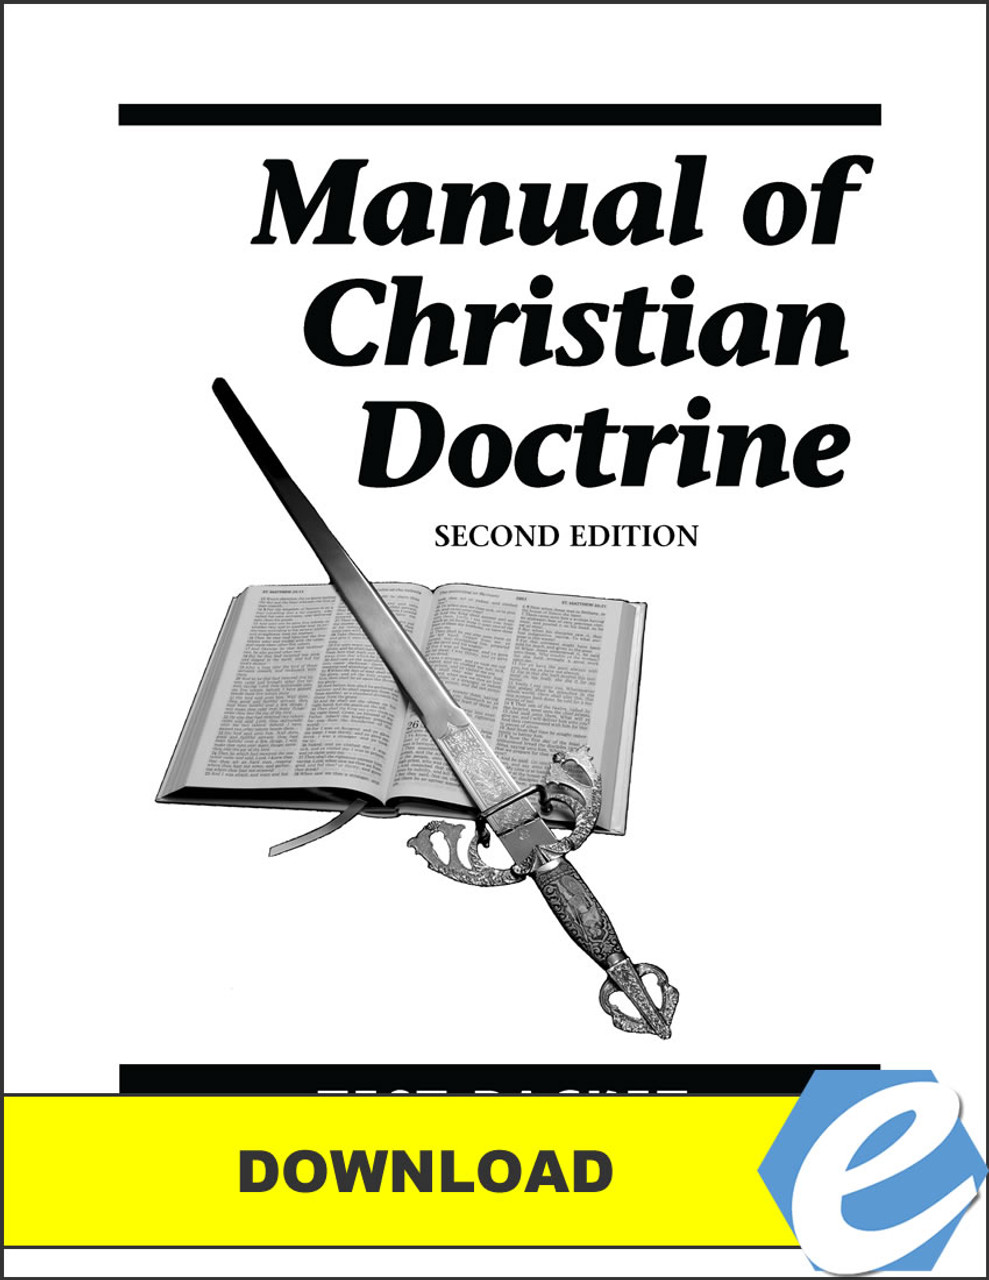 Manual of Christian Doctrine, 2nd edition - Test Packet - PDF Download